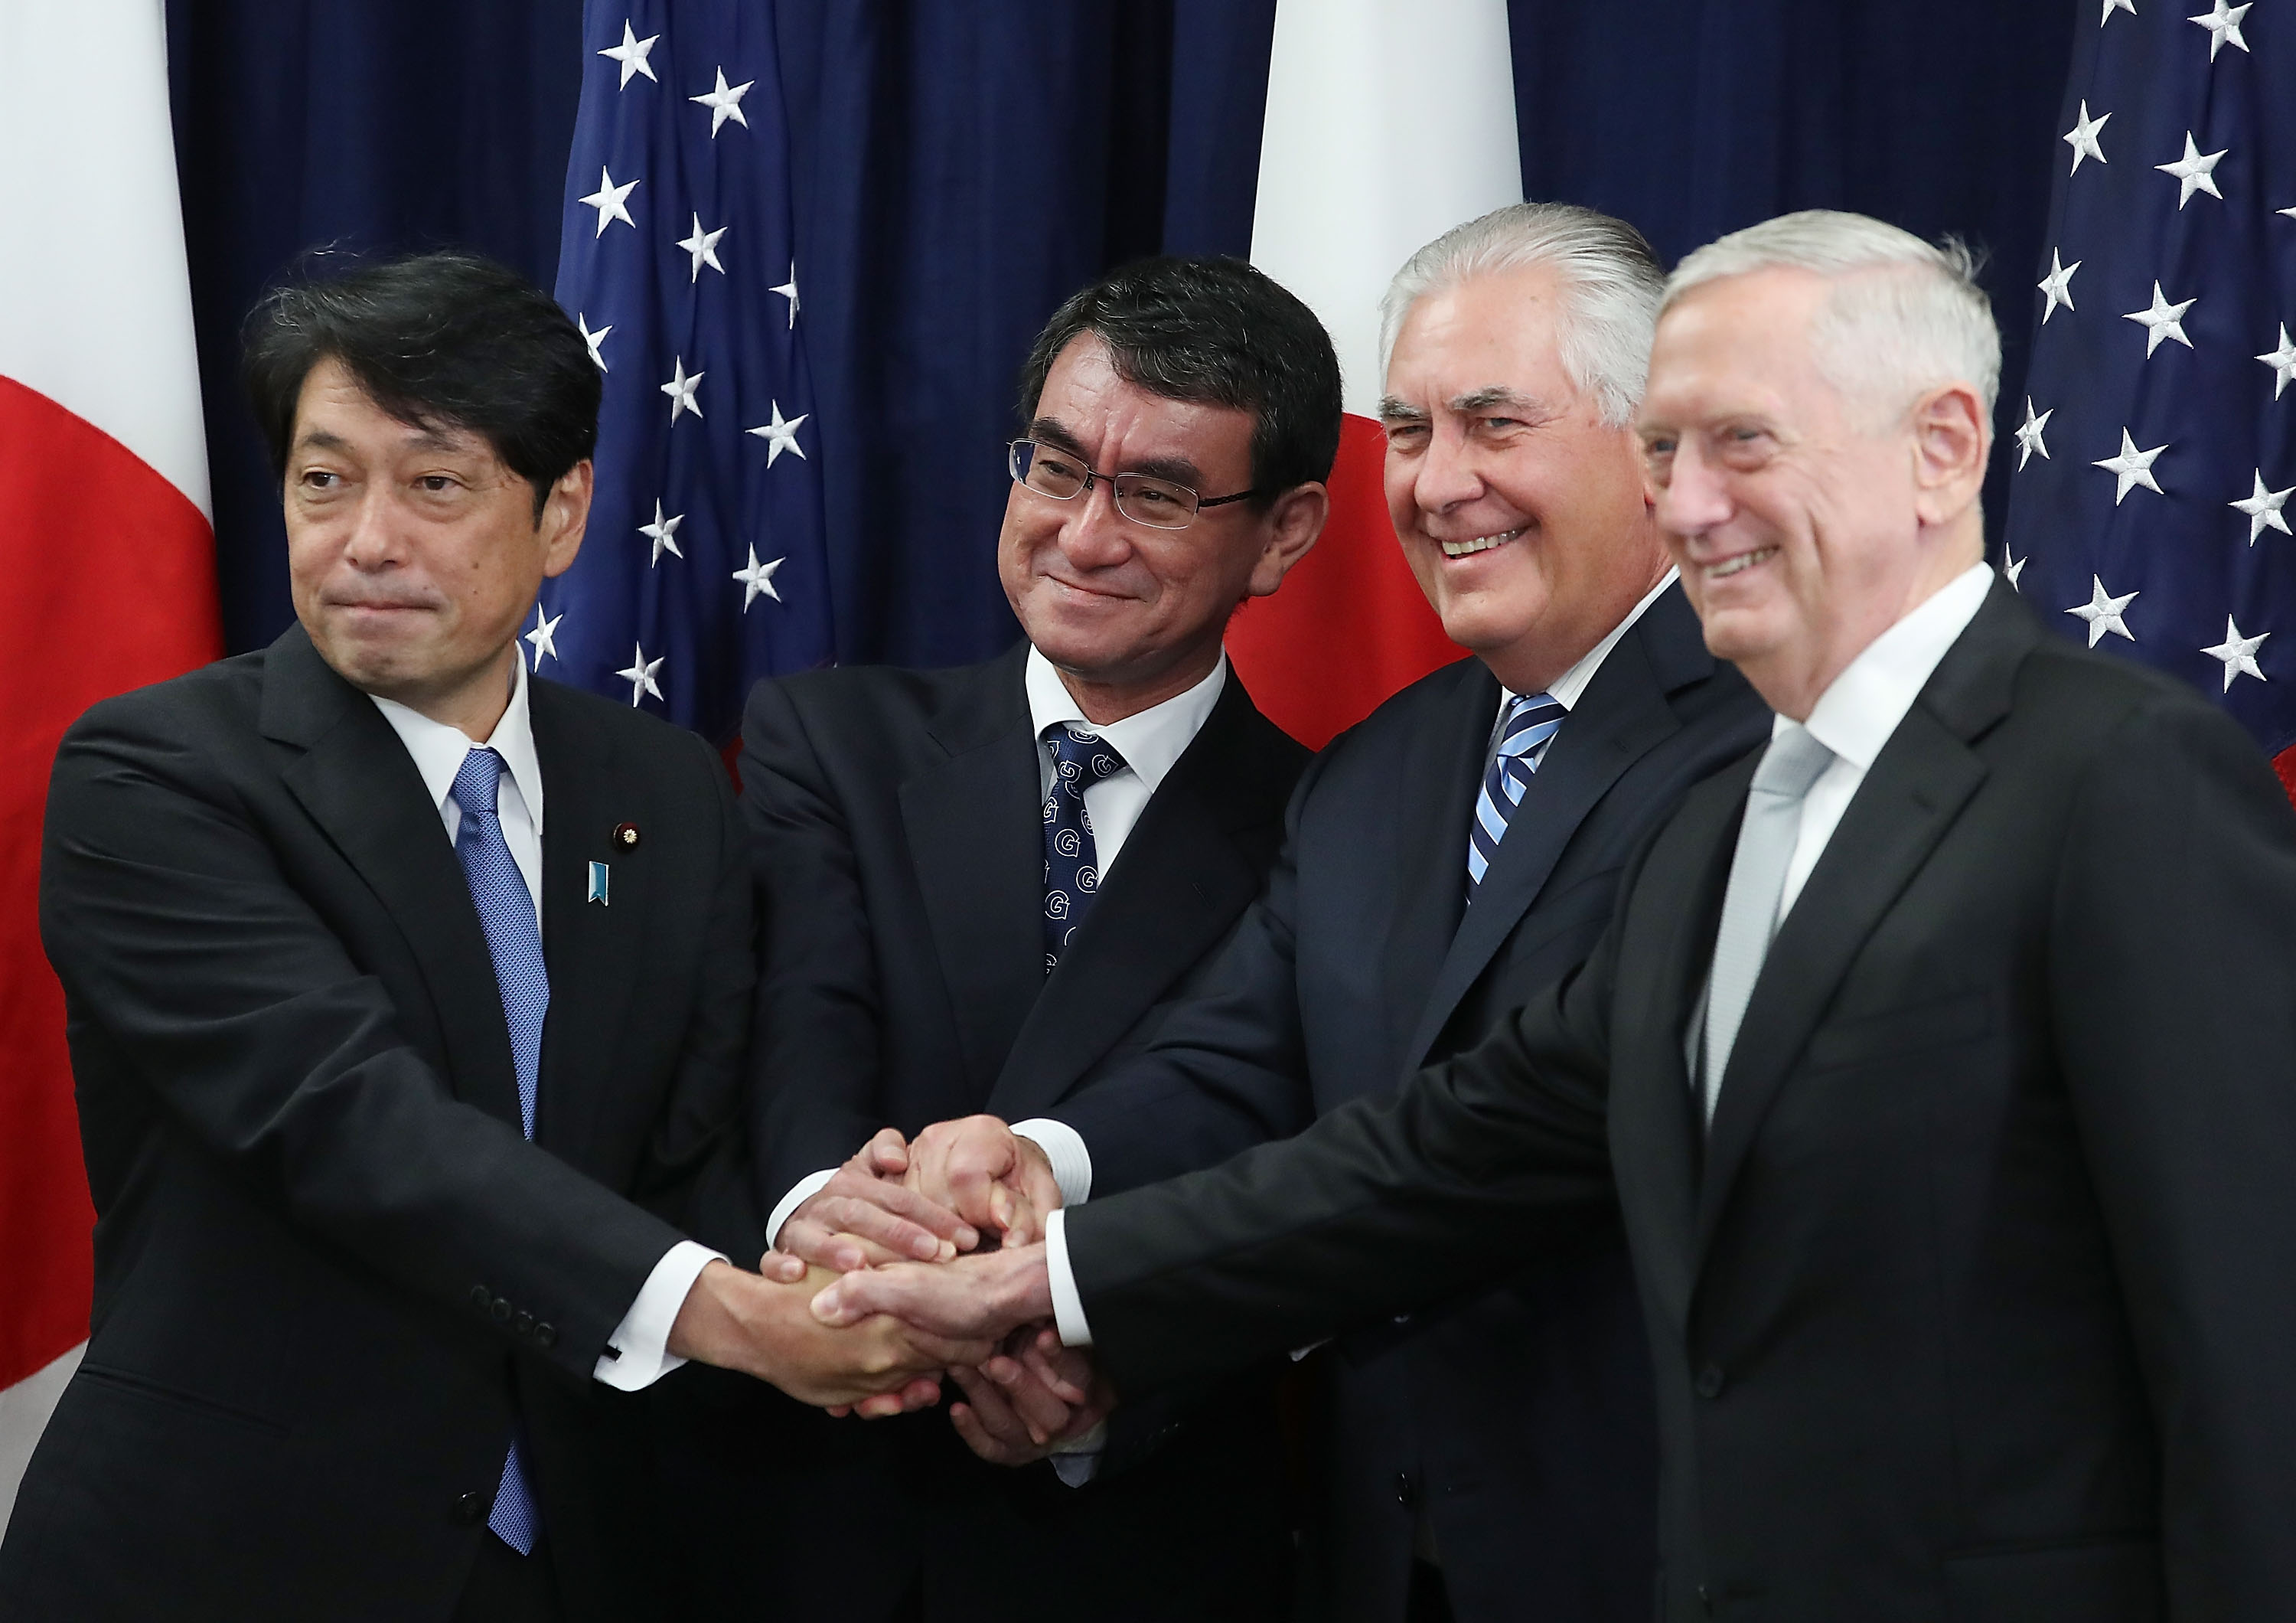 Secretary of State Rex Tillerson (2ndR), Defense Secretary James Mattis (R), shake hands with Japanese Foreign Minister Taro Kono (2ndL) and Defense Minister Itsunori Onodera (L), during a meeting of the U.S.-Japan Security Consultative Committee at the State Department, on August 17, 2017 in Washington, DC. (Mark Wilson/Getty Images)